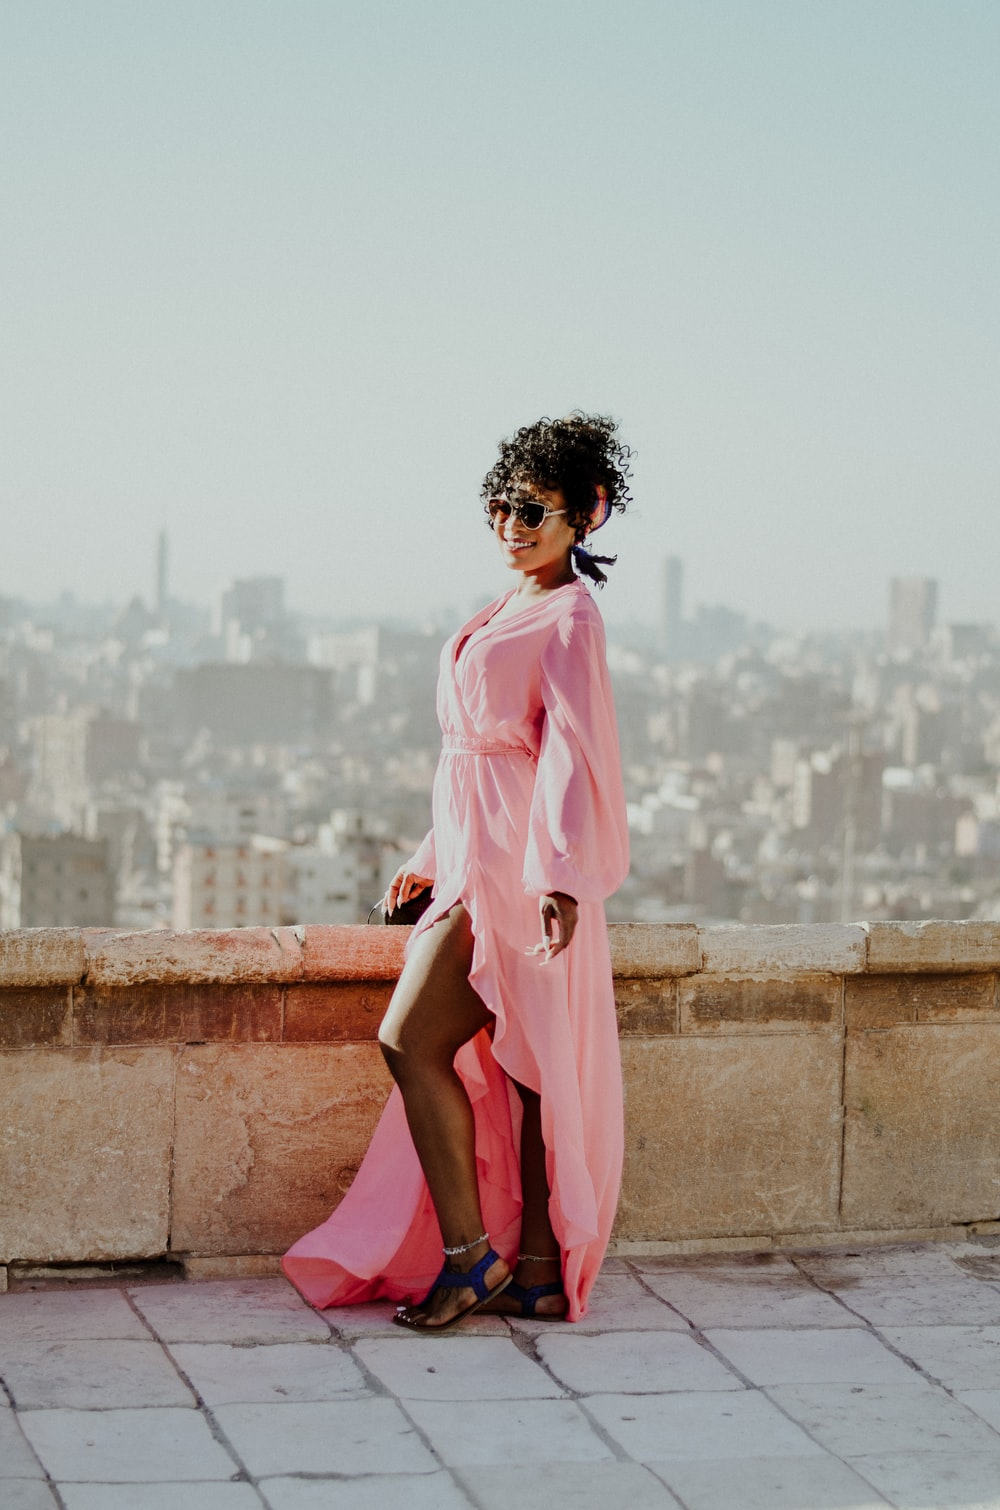 woman in pink dress standing on brown concrete wall during daytime